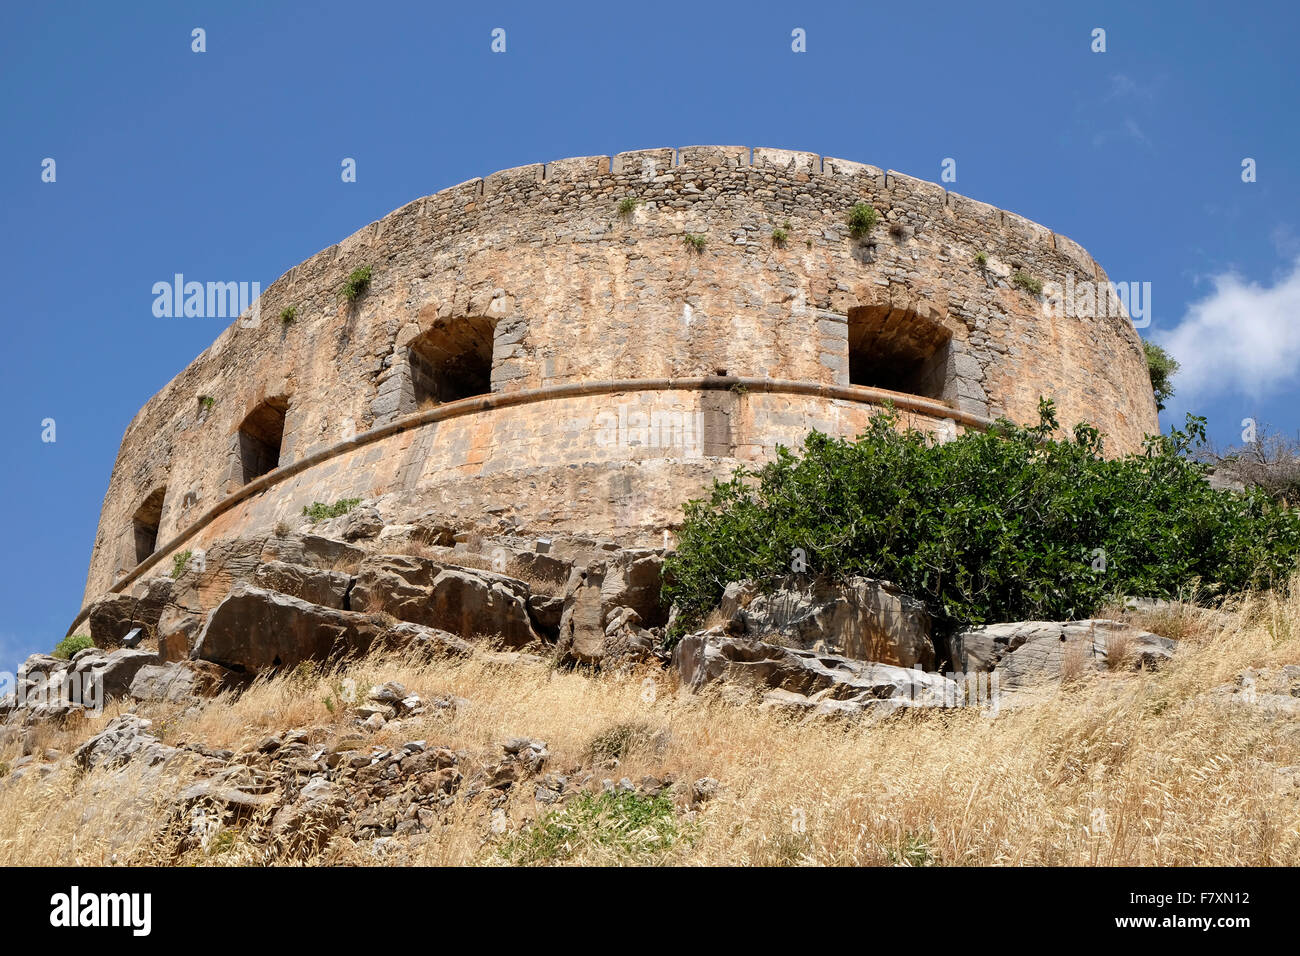 The Venetian half moon bastion of Mezzaluna Moceniga on Spinalonga, Crete. - Stock Image